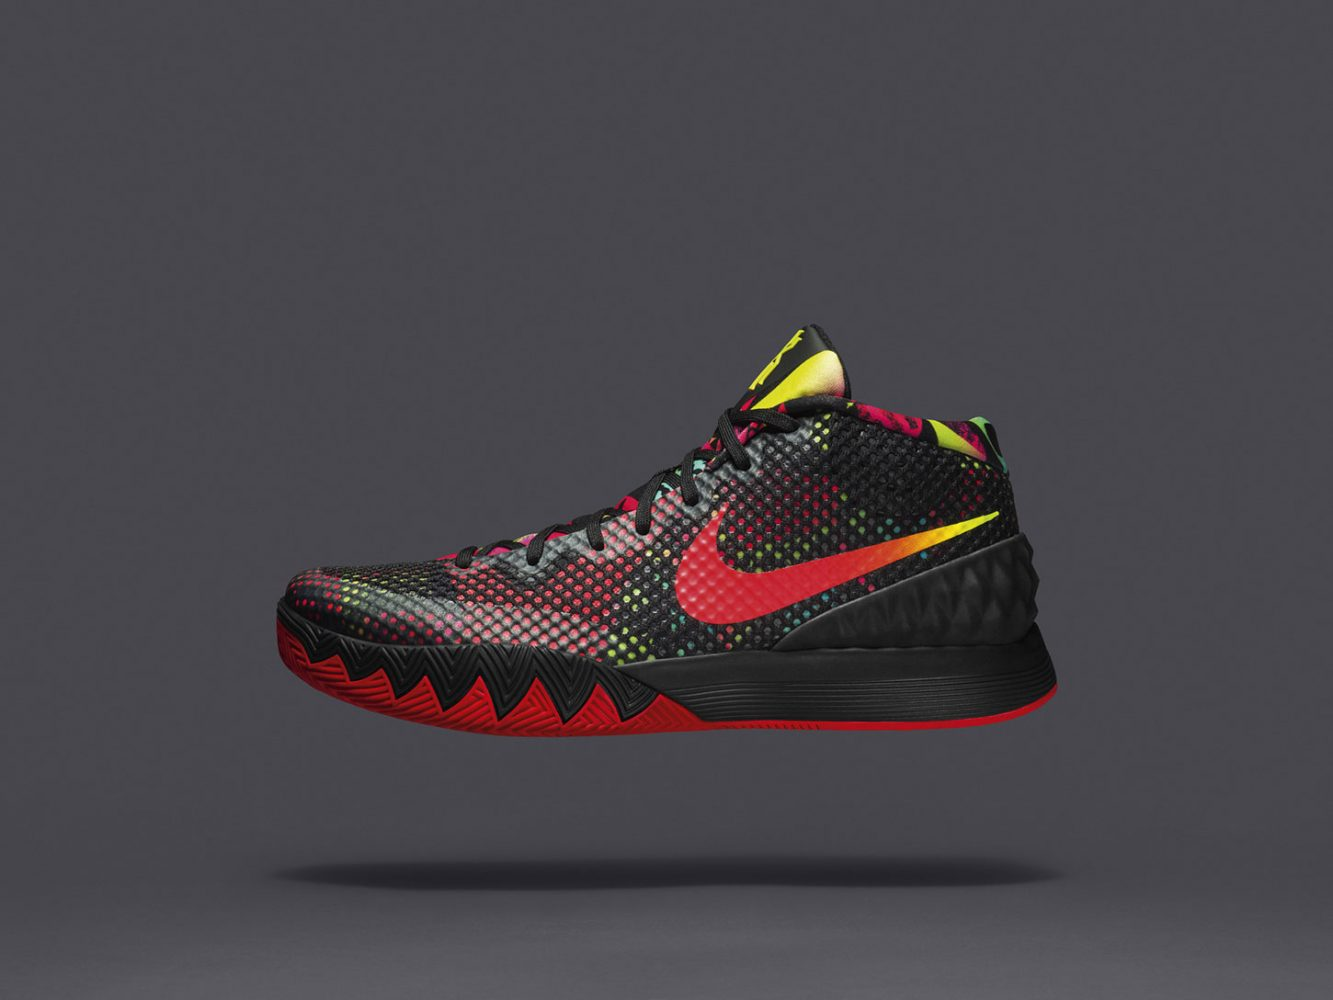 c6a0b6df2d81 NIKE WELCOMES KYRIE IRVING TO ITS SIGNATURE ATHLETE FAMILY – Fatlace ...